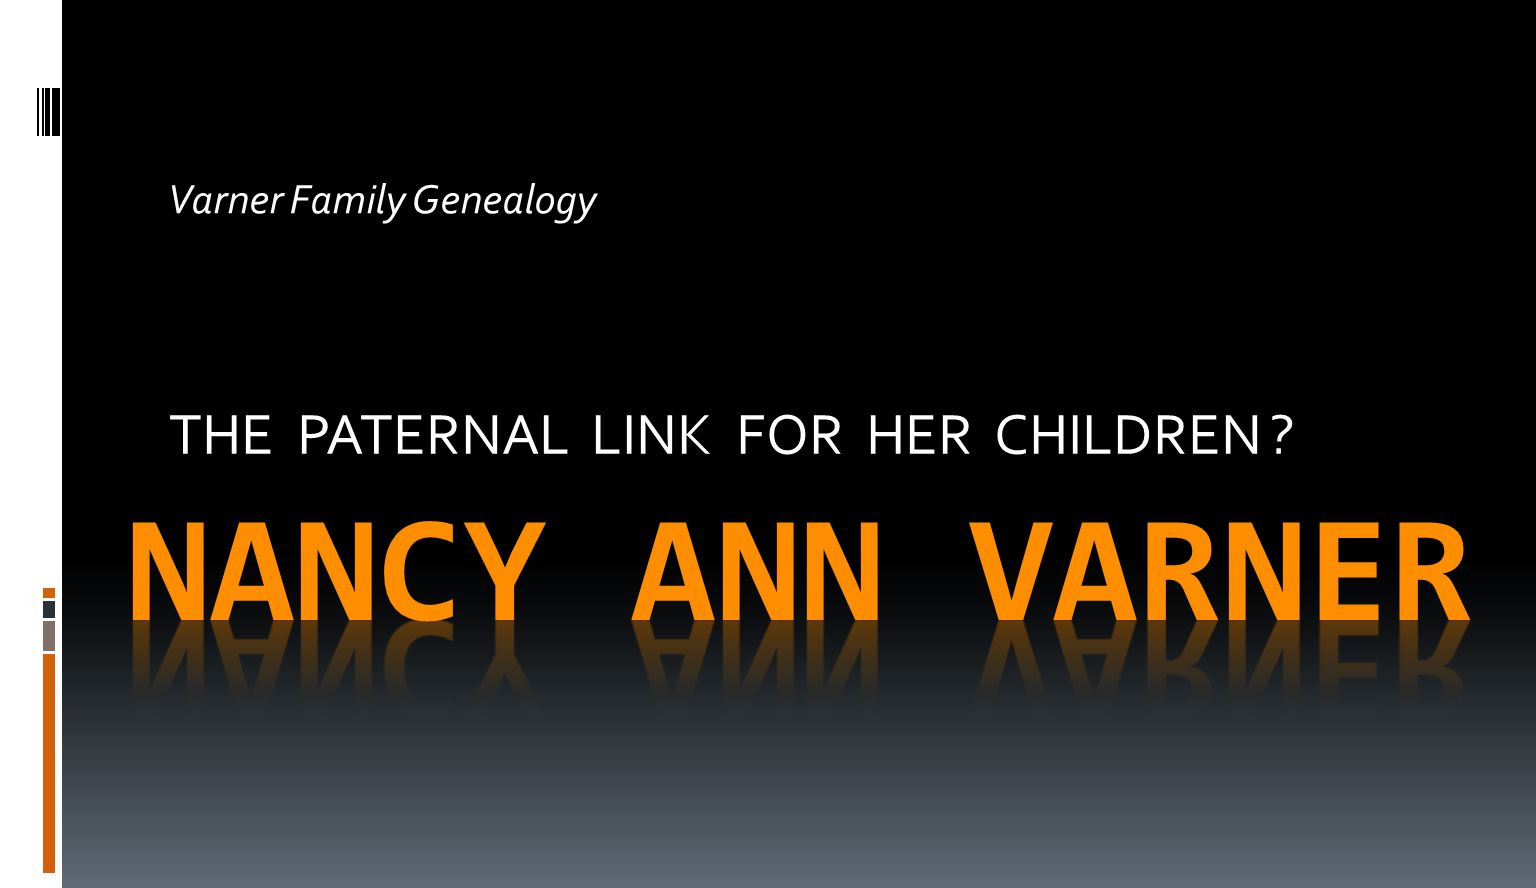 THE PATERNAL LINK FOR HER CHILDREN ? Varner Family Genealogy